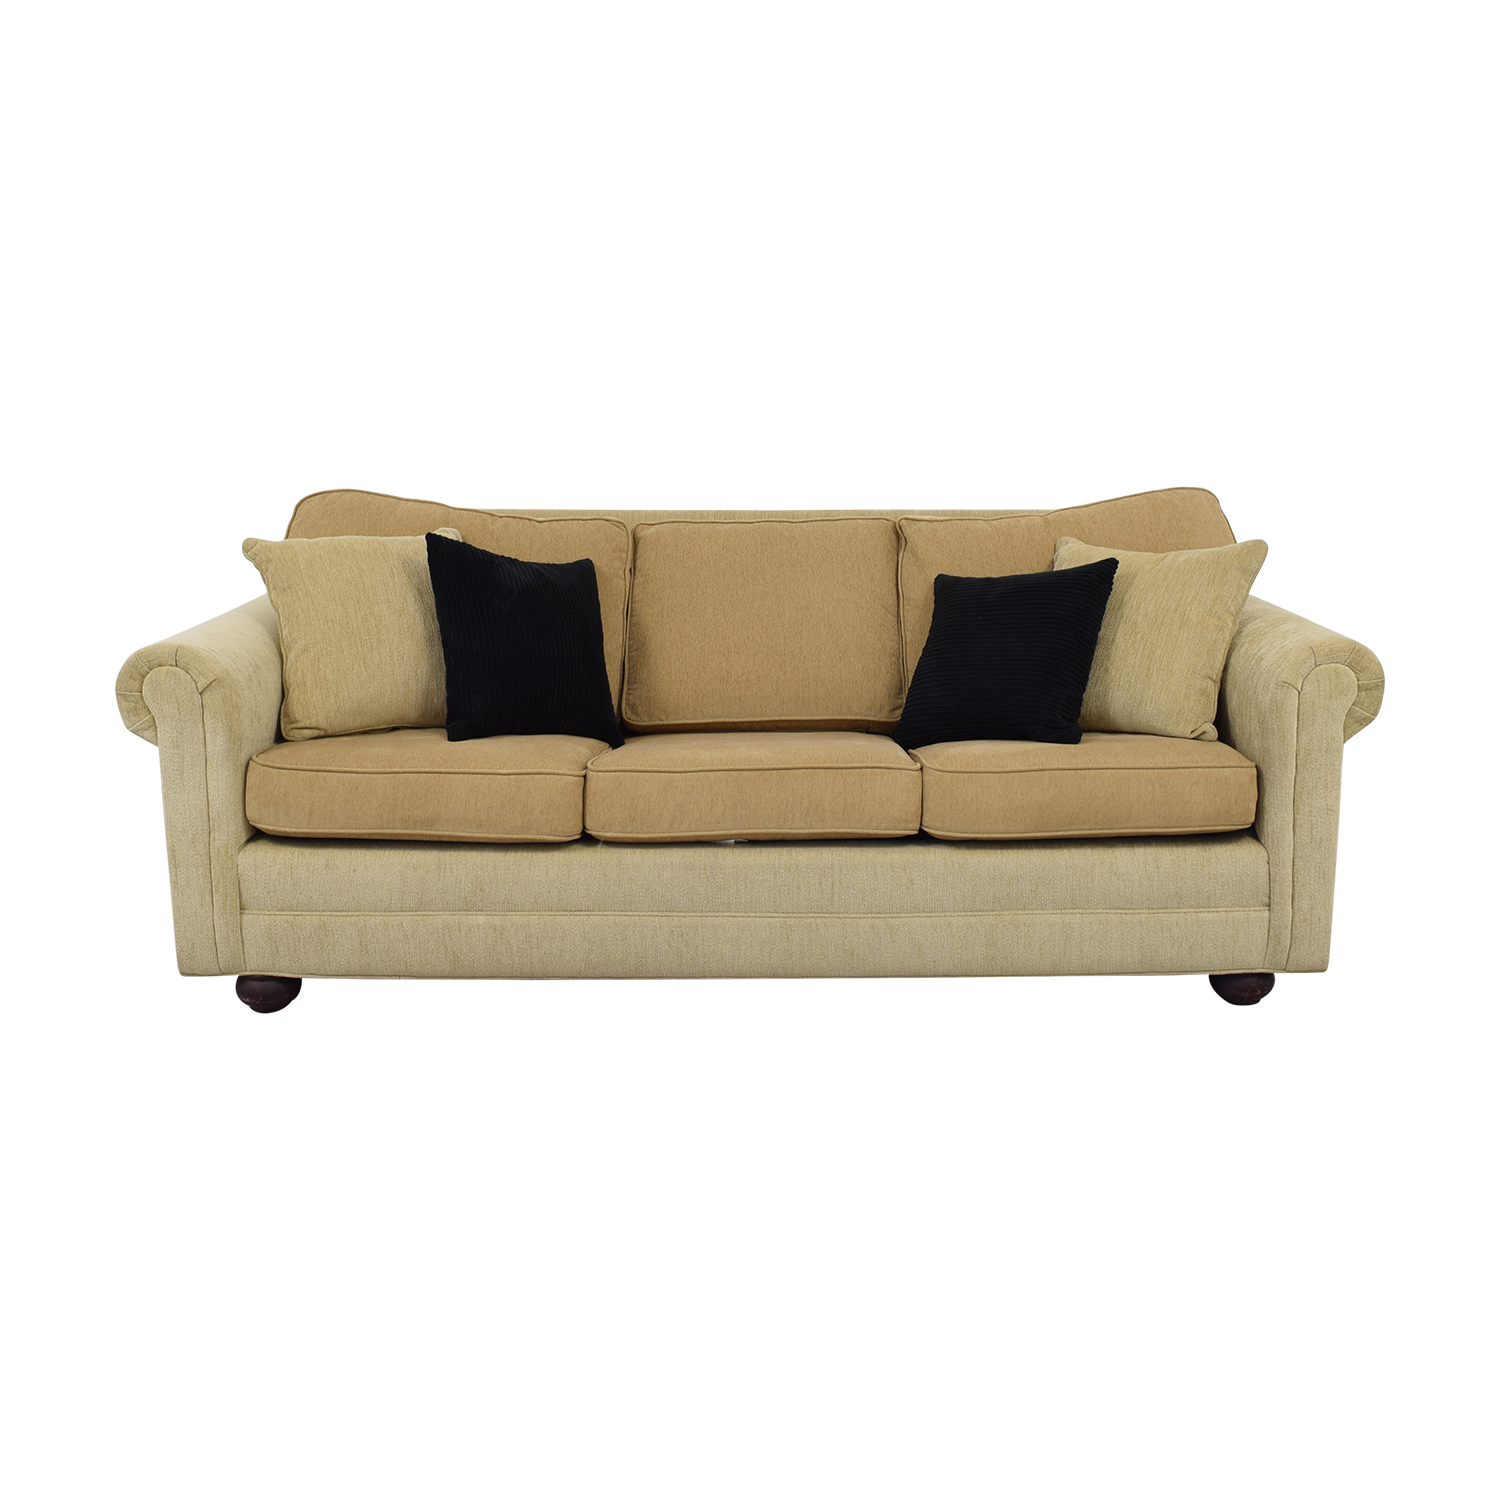 Restoration Hardware Beige Three-Cushion Couch with Queen Convertible / Sofas